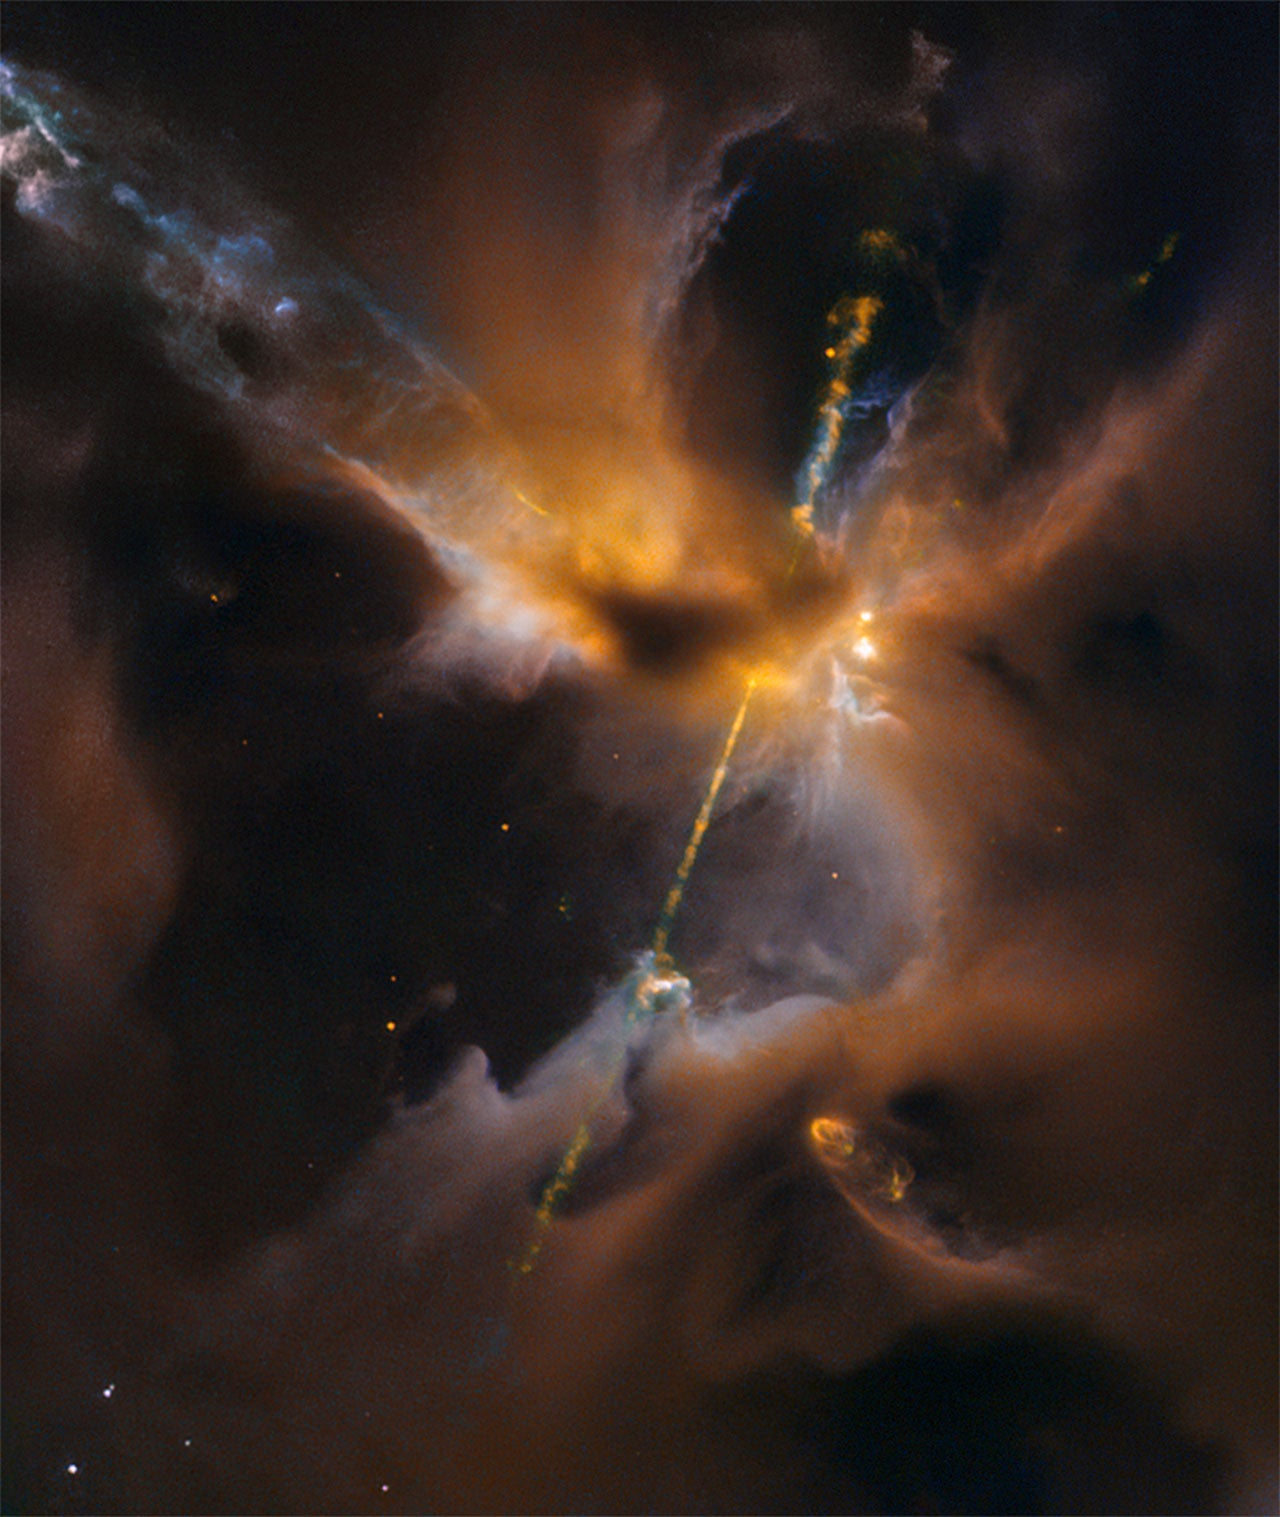 An Eruptive Star Proves Our Galaxy Is Magical Even Without the Force